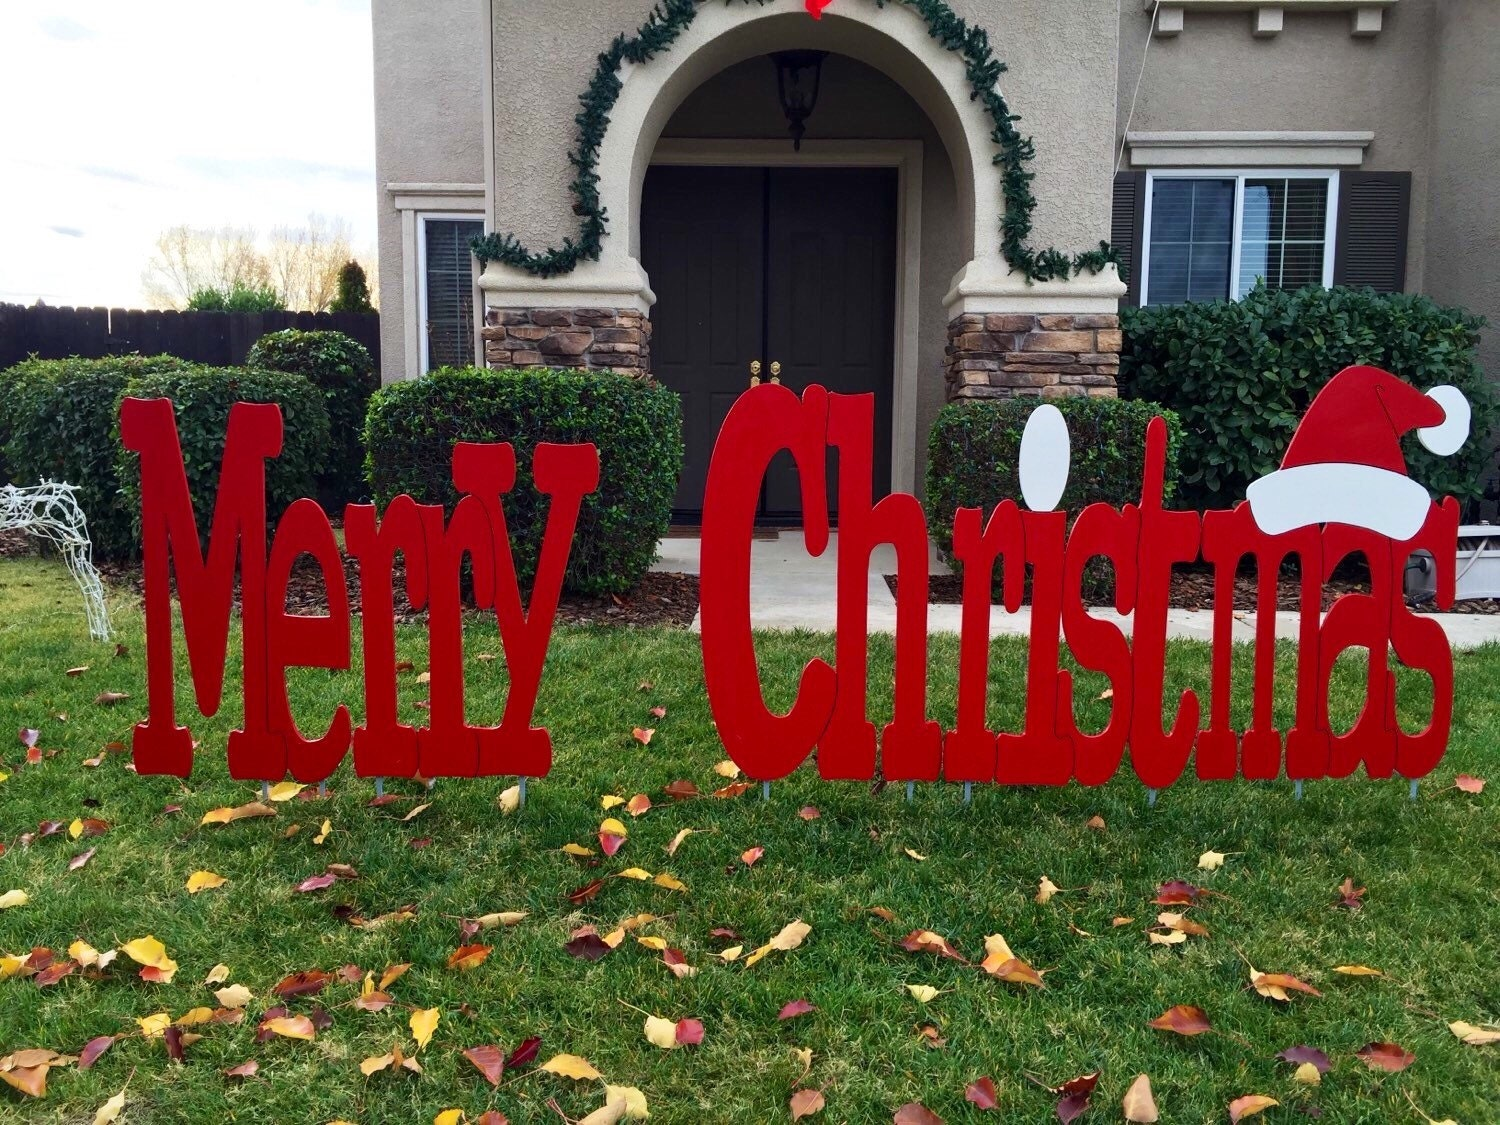 Merry christmas outdoor holiday yard art sign large for Large outdoor christmas displays